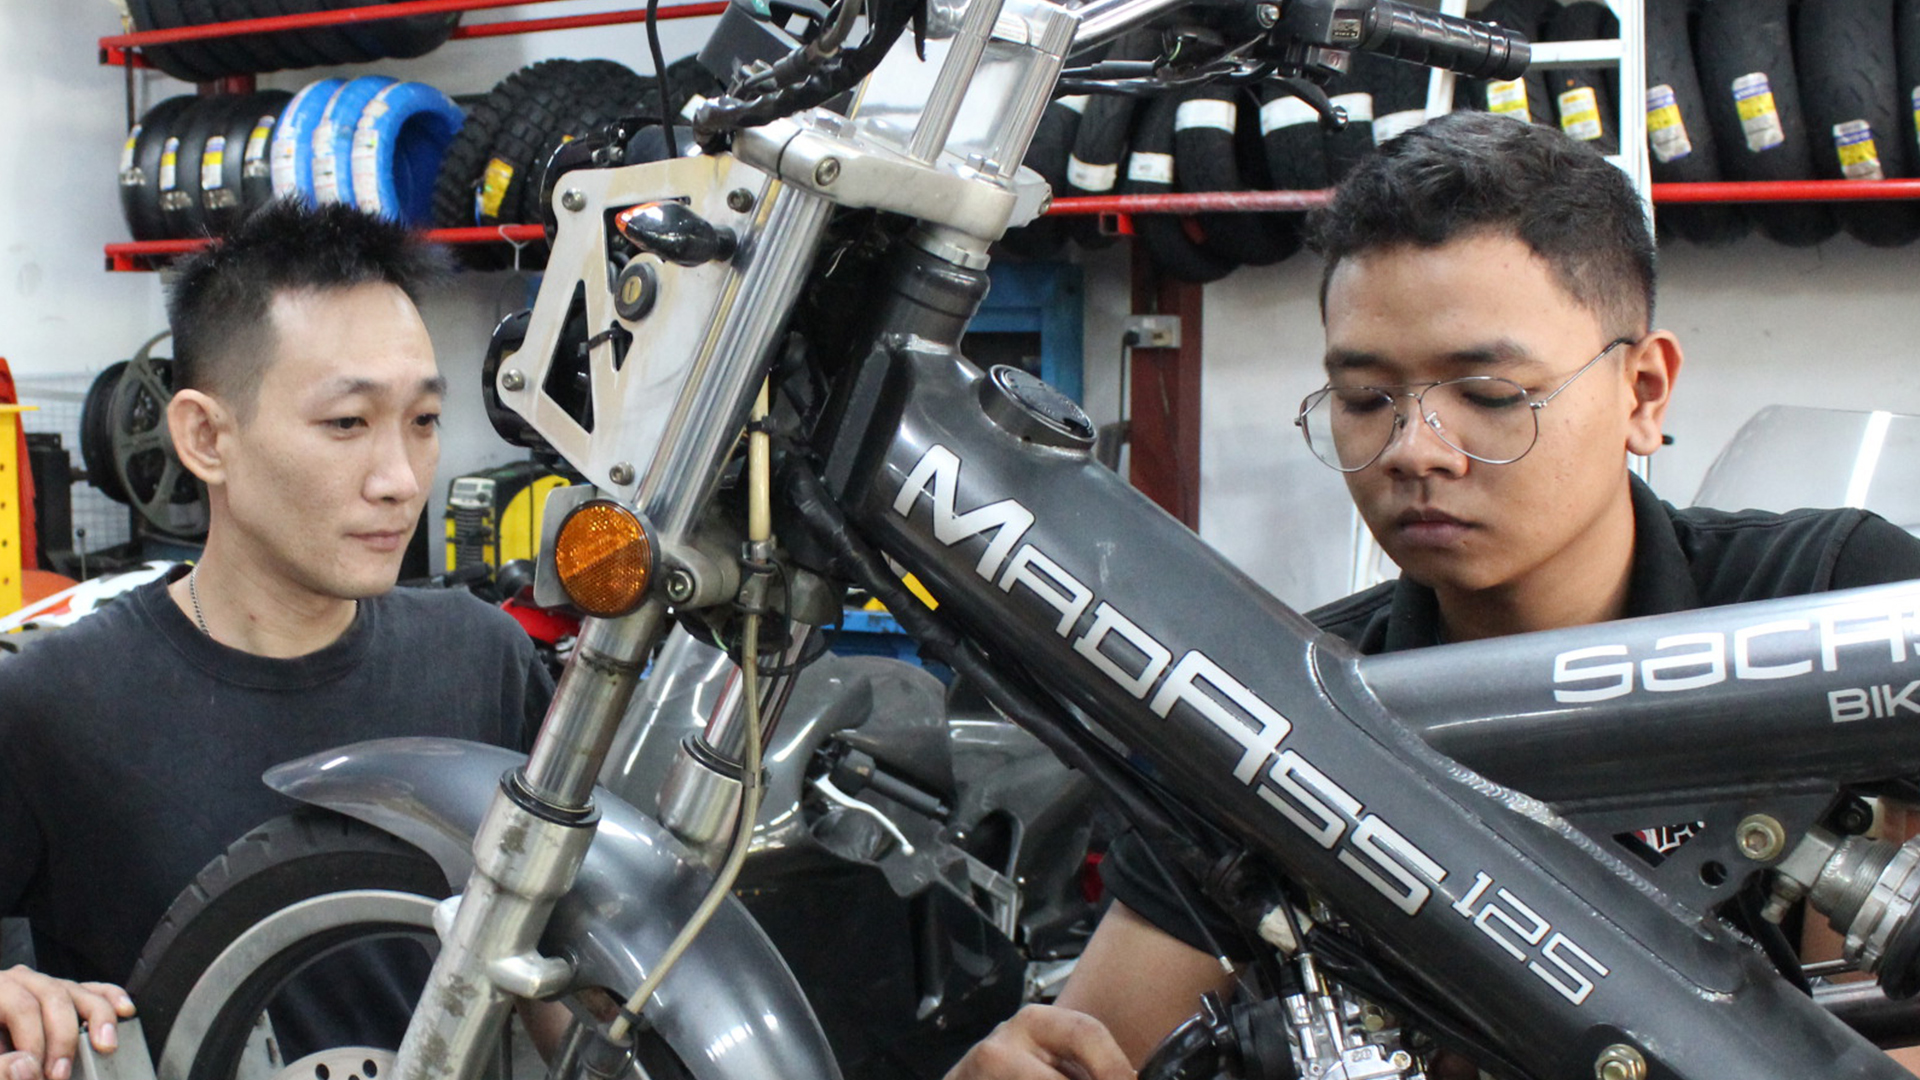 Banner Nitec in Motorcycle Technology Trn